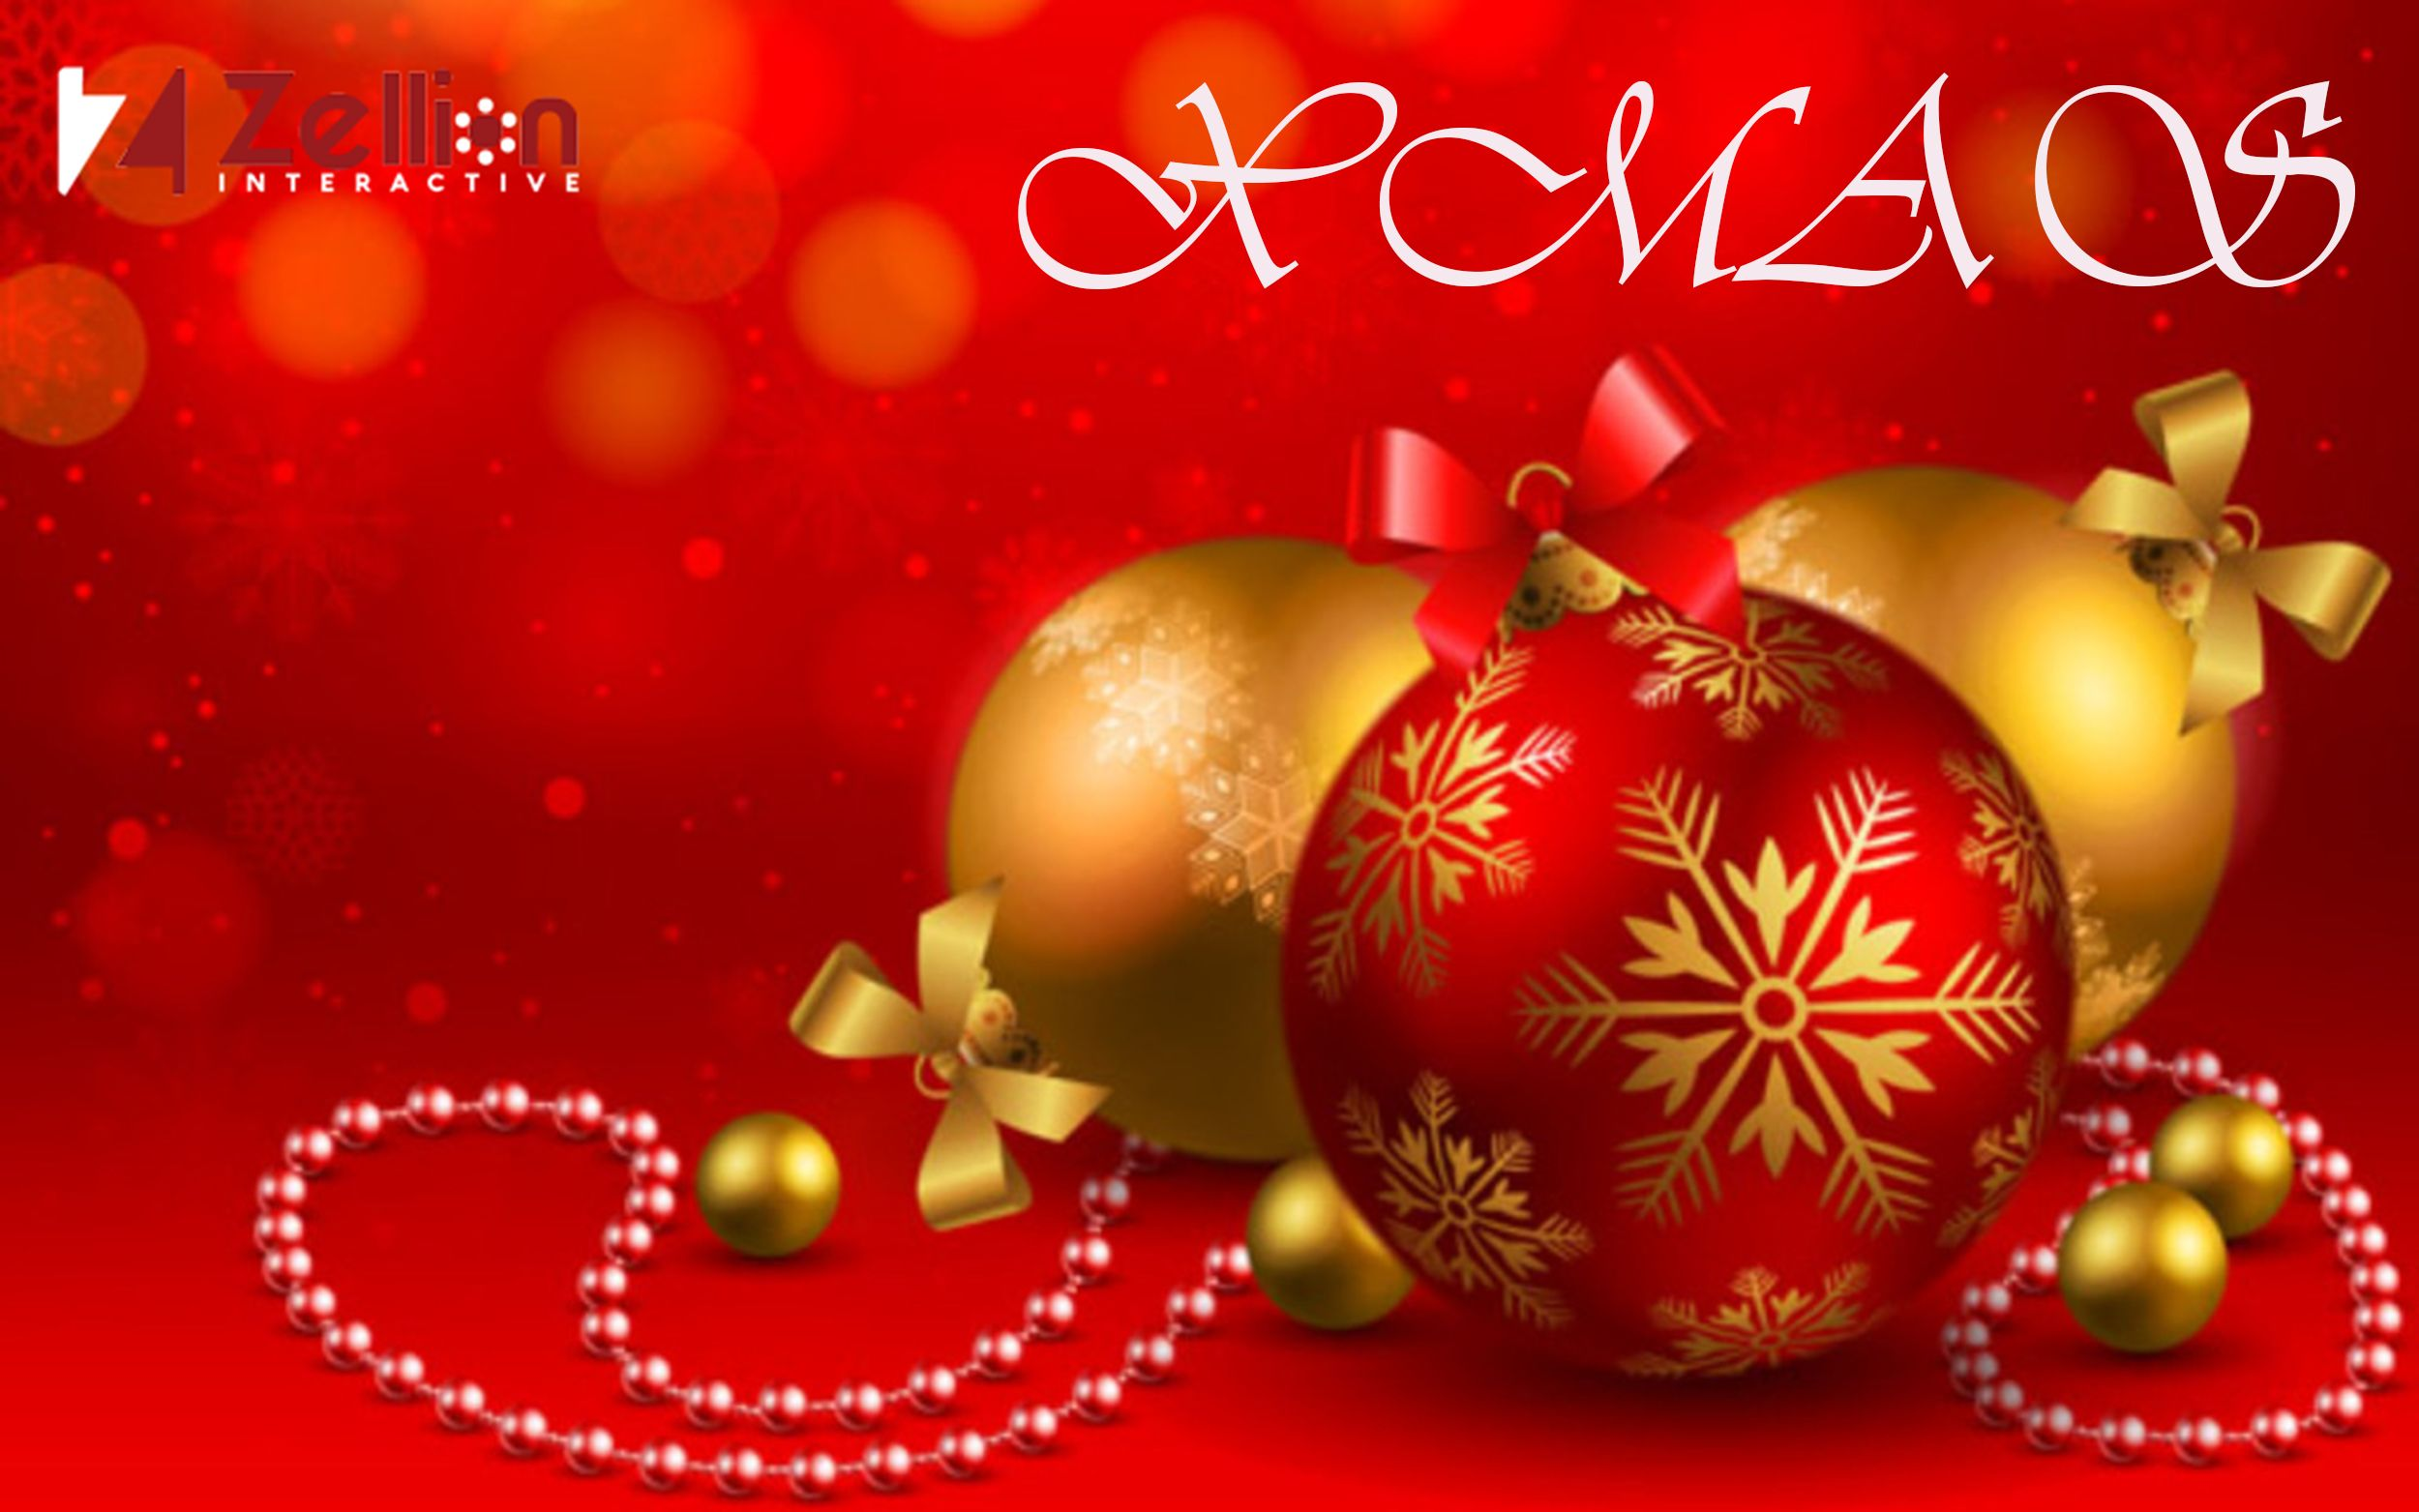 Xmas offer 50 discount going on discount available on this is a real card not an e card send this card now m4hsunfo